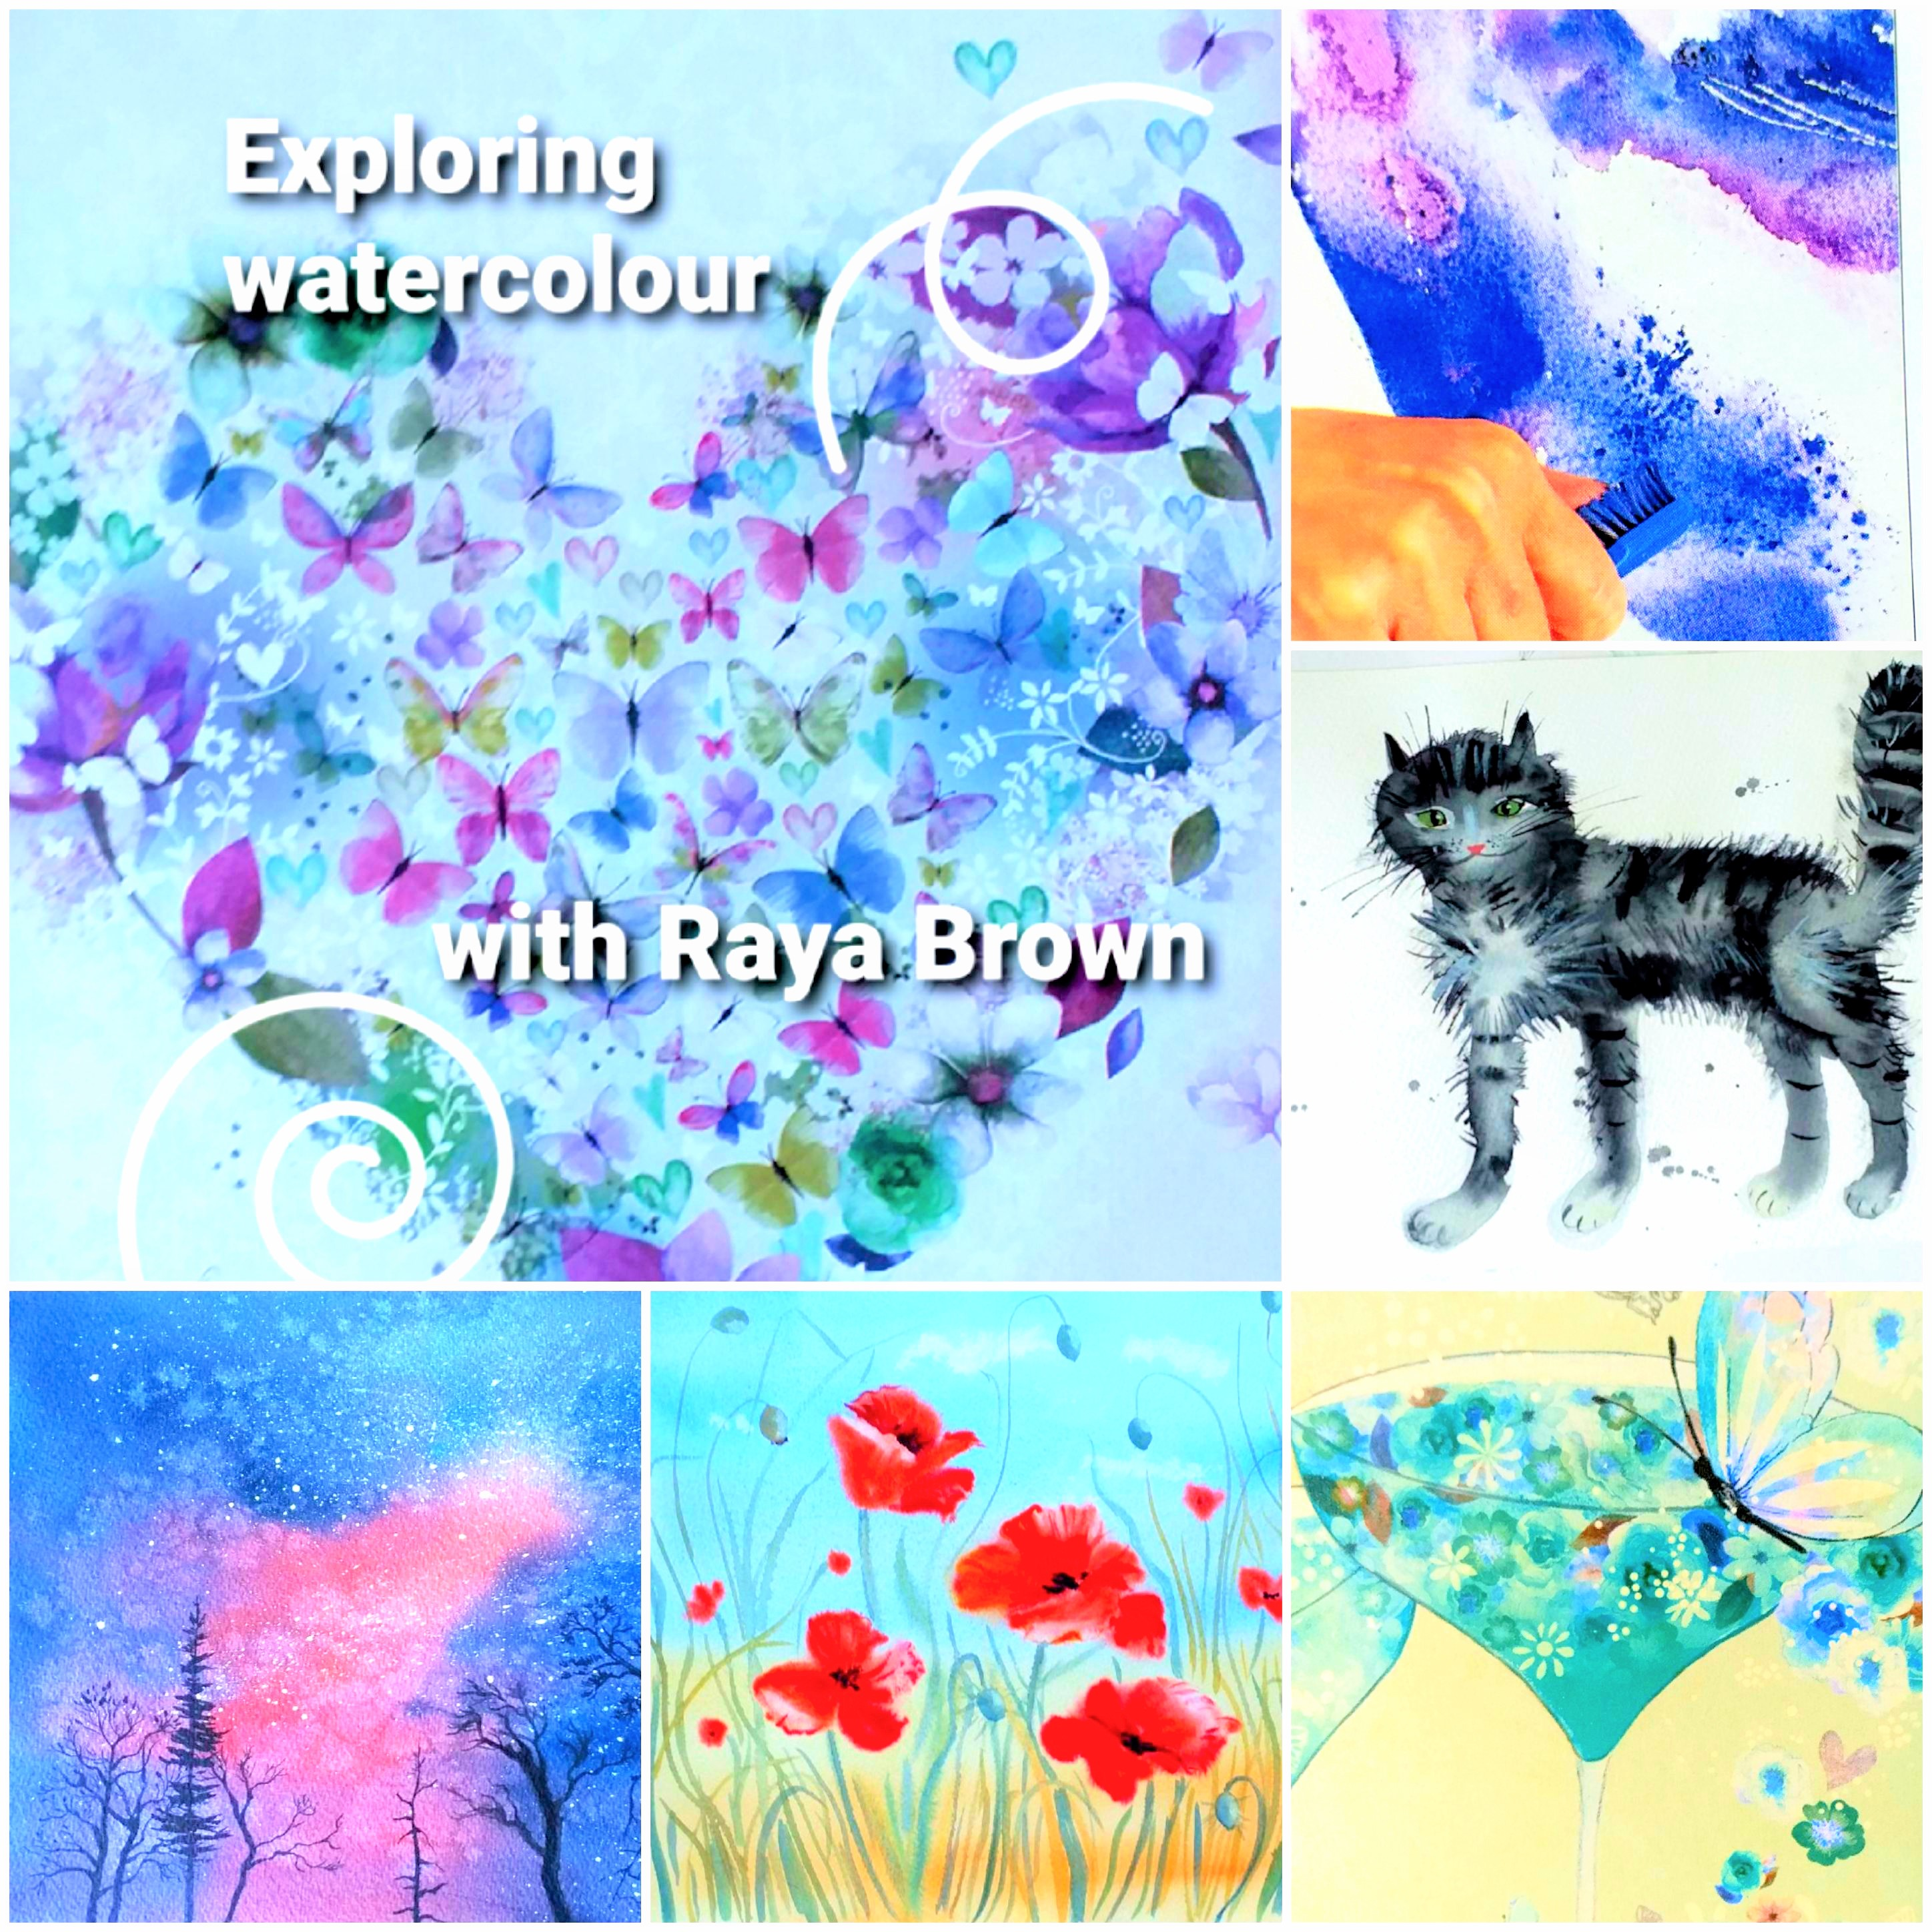 'Exploring watercolour' interactive online course with live tuition with Artist Raya Brown